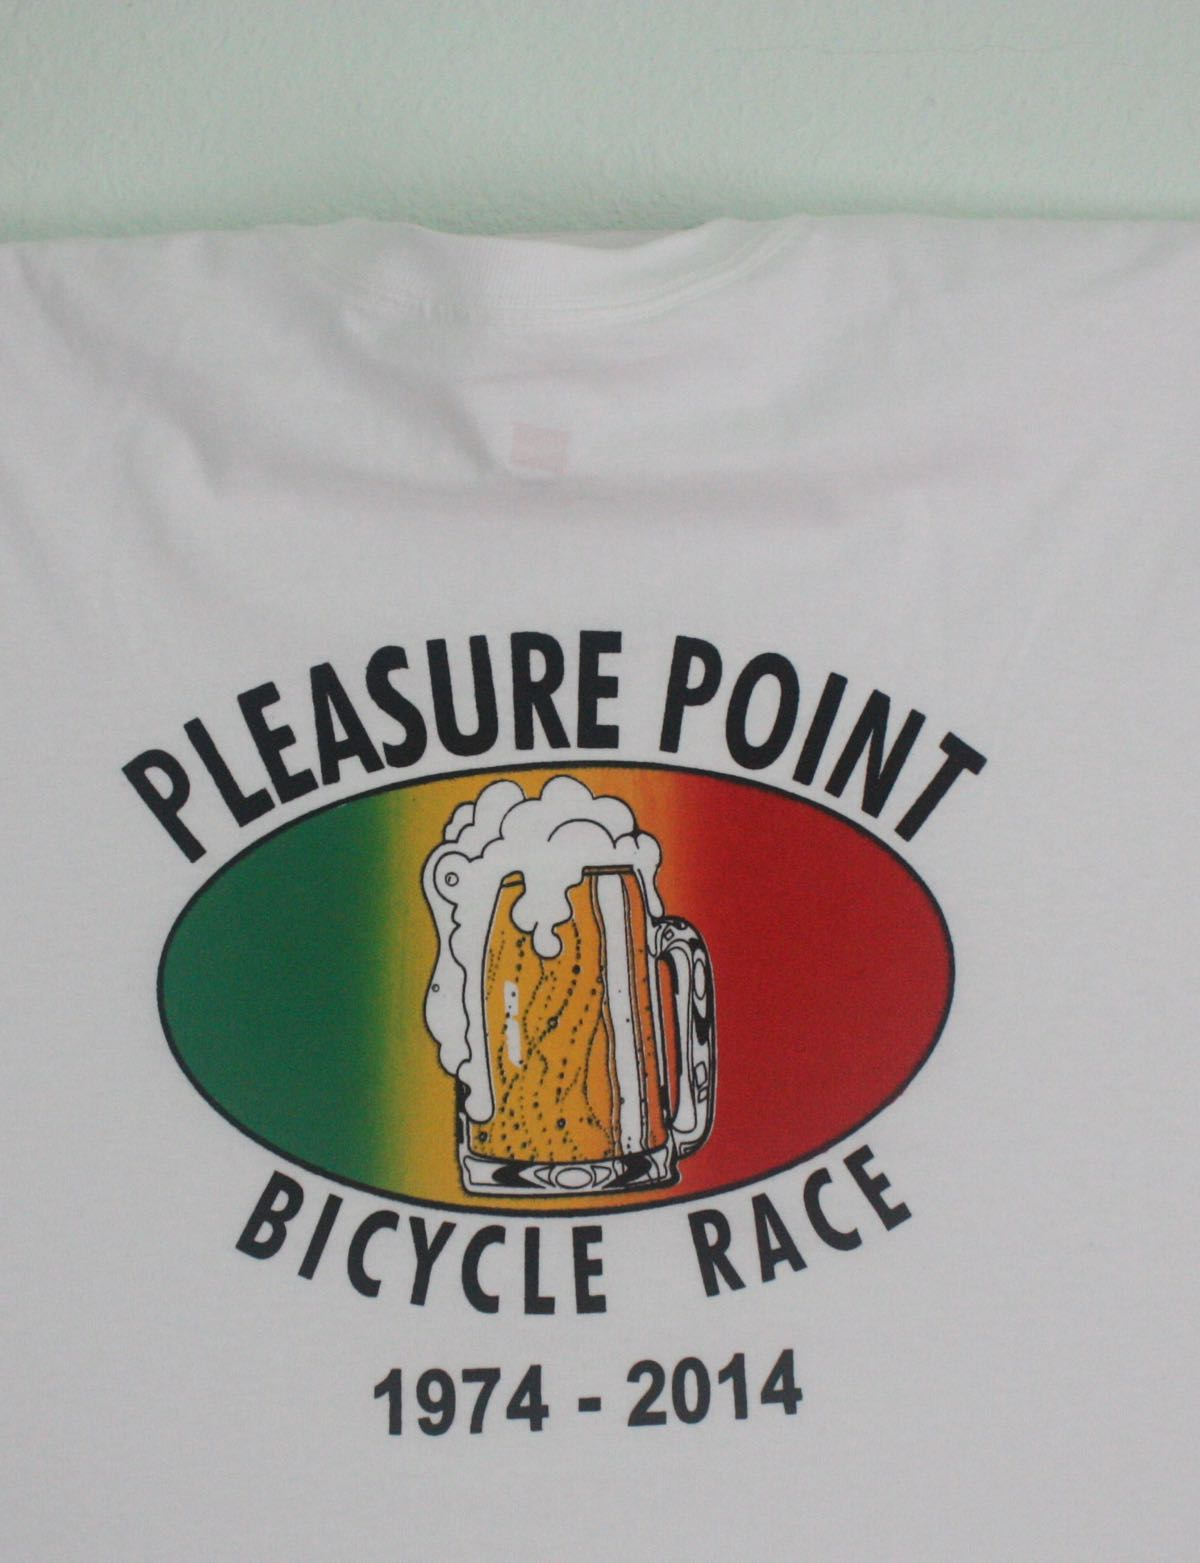 Pleasure Point Bike Race 40th Anniversary Tee